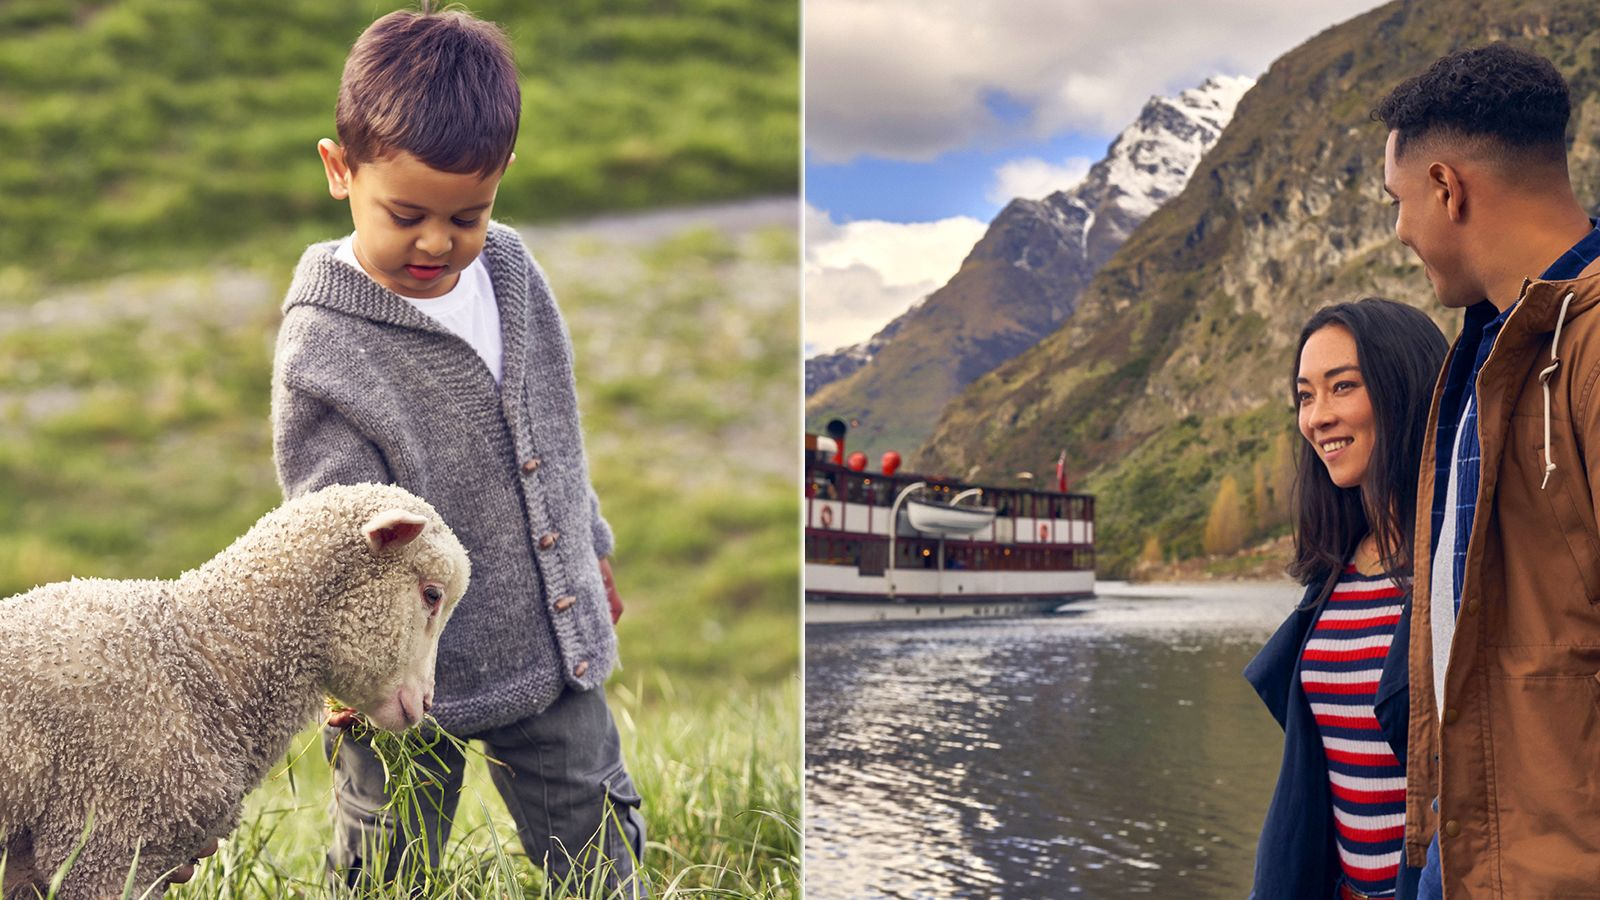 Combo image of boy with a sheep and two people on the shore looking at a cruise ship